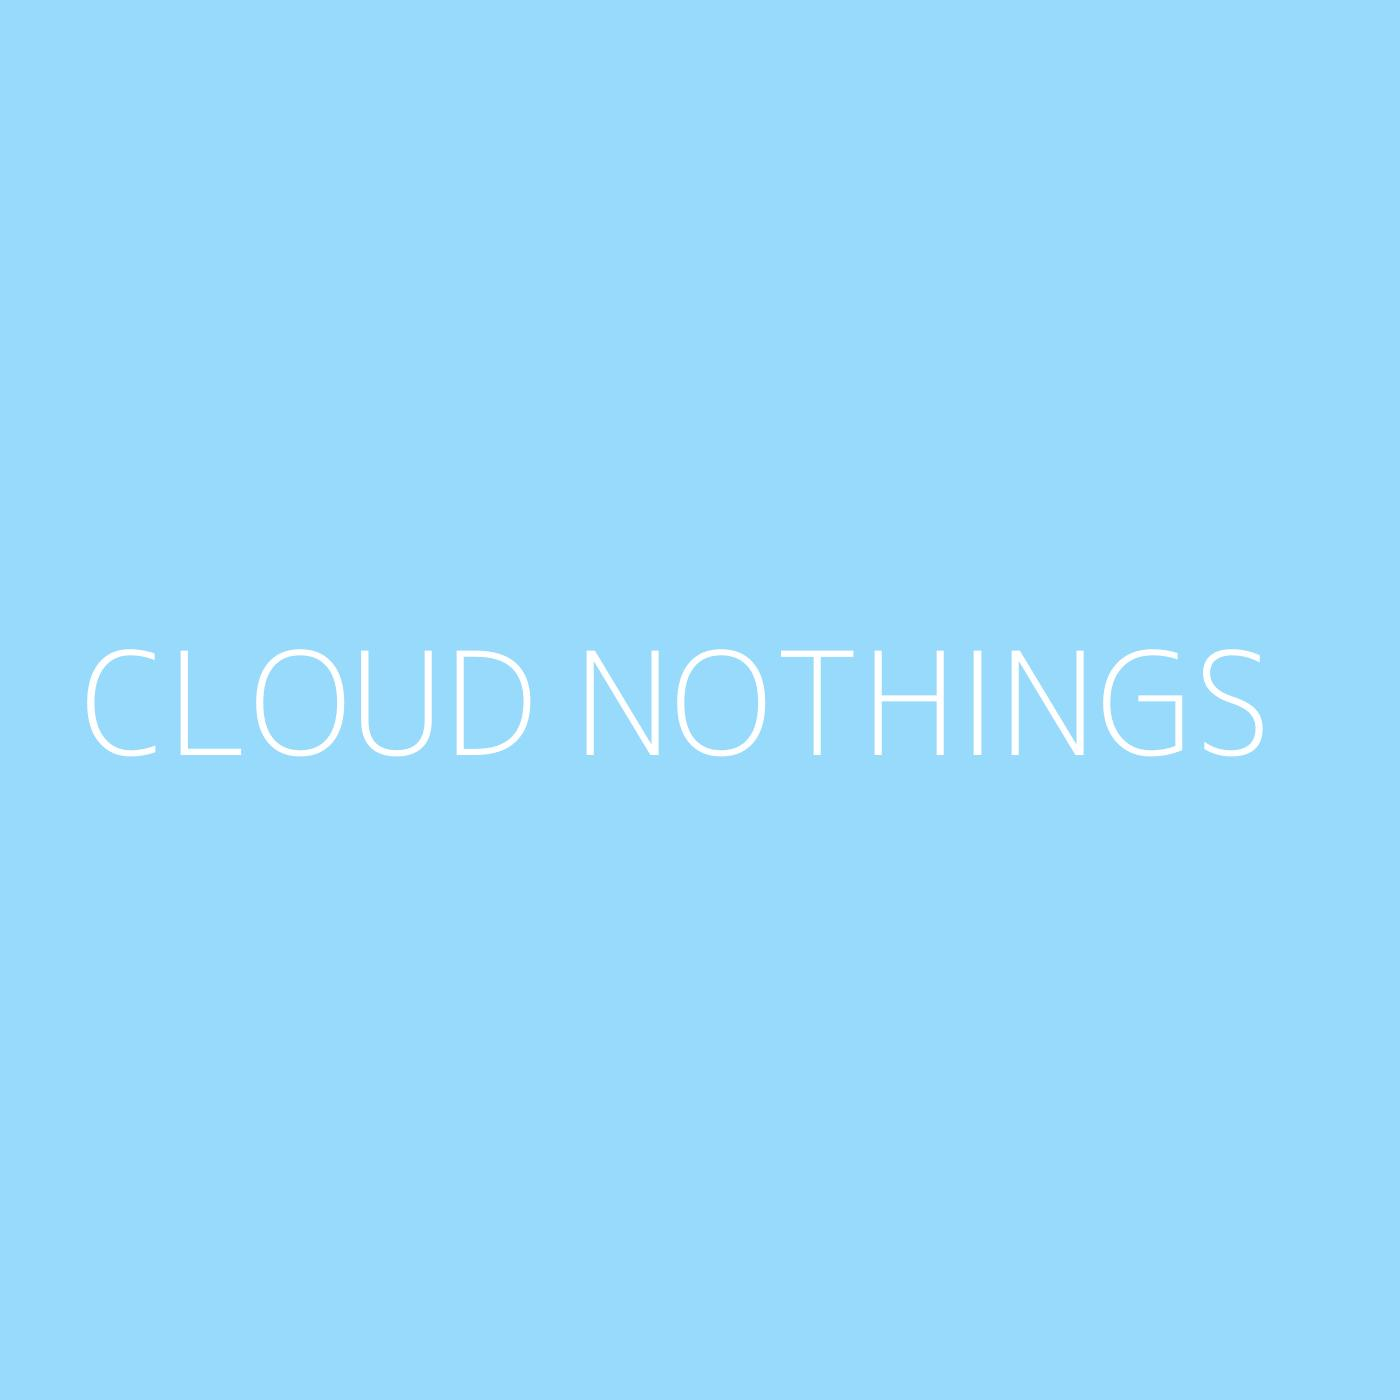 Cloud Nothings Playlist Artwork